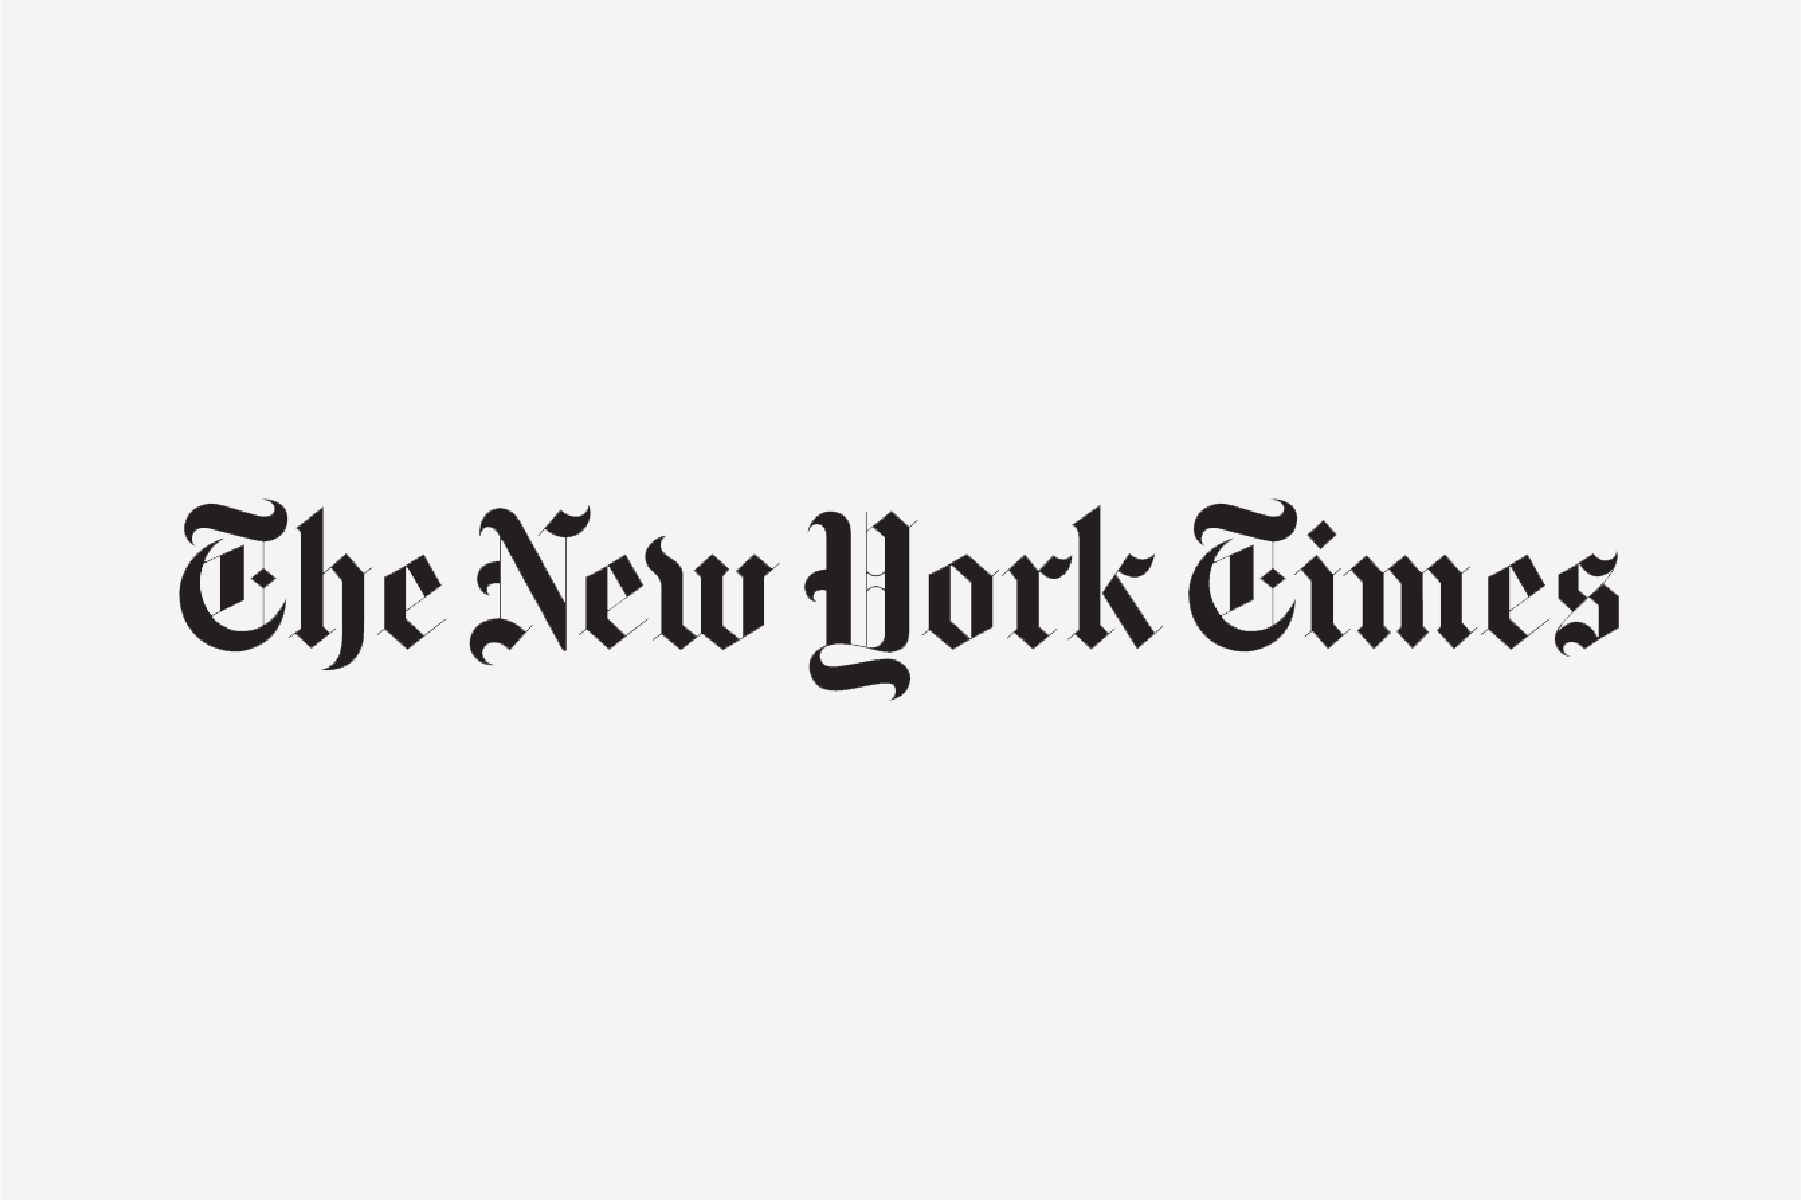 New York Times Taken to Task for Misrepresenting Trump Supporters as 'Swing Voters'